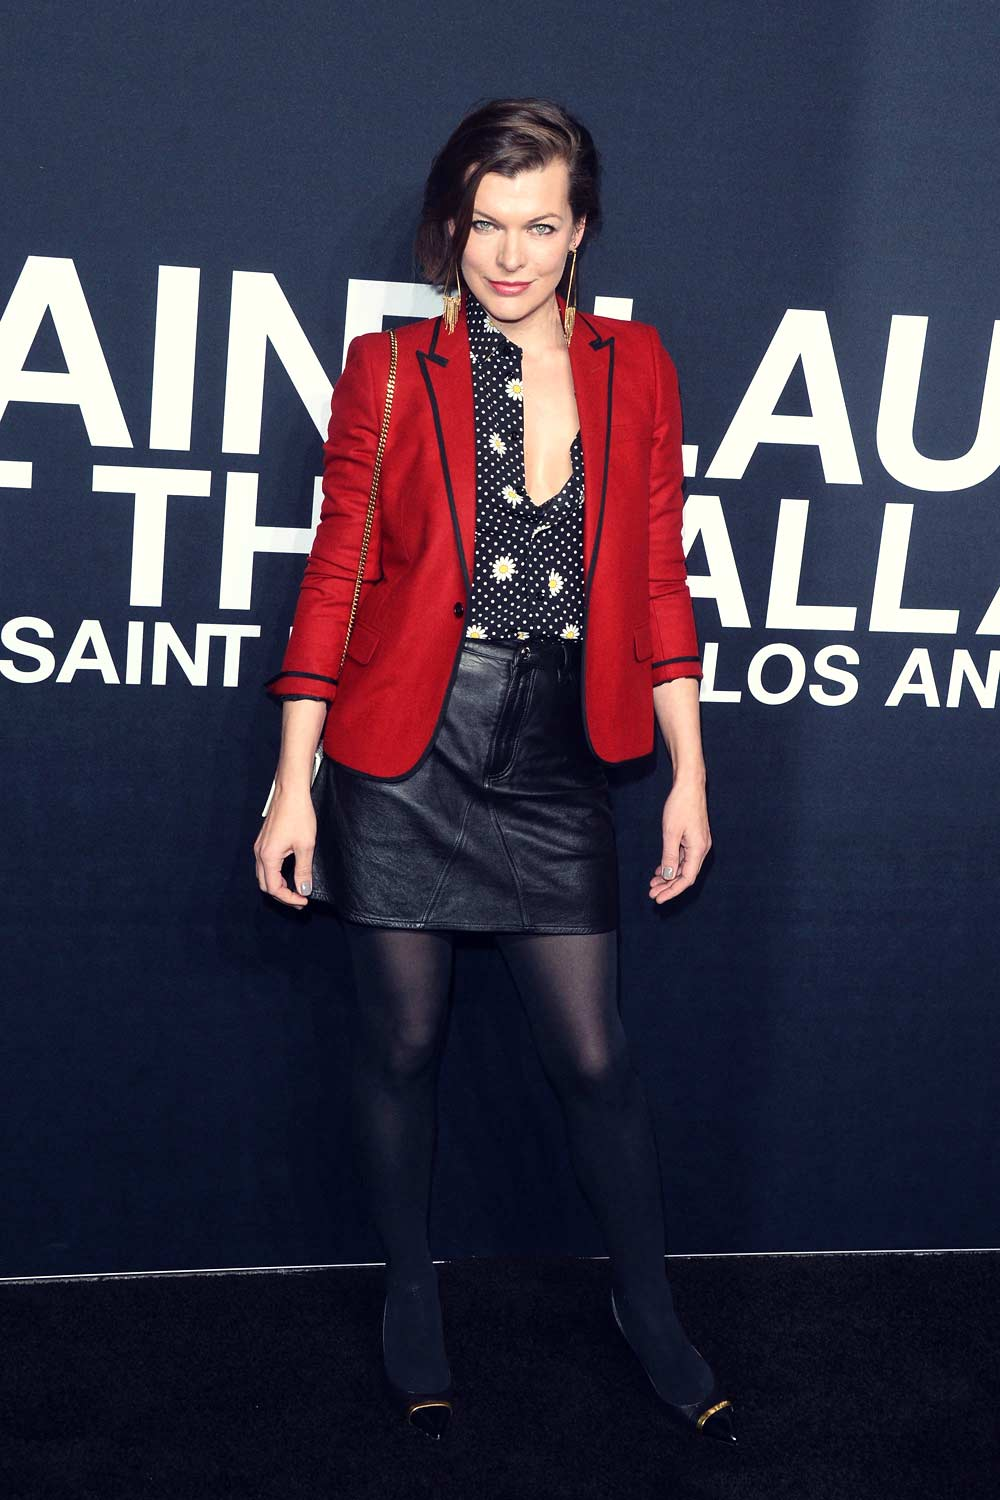 Milla Jovovich attends Saint Laurent show